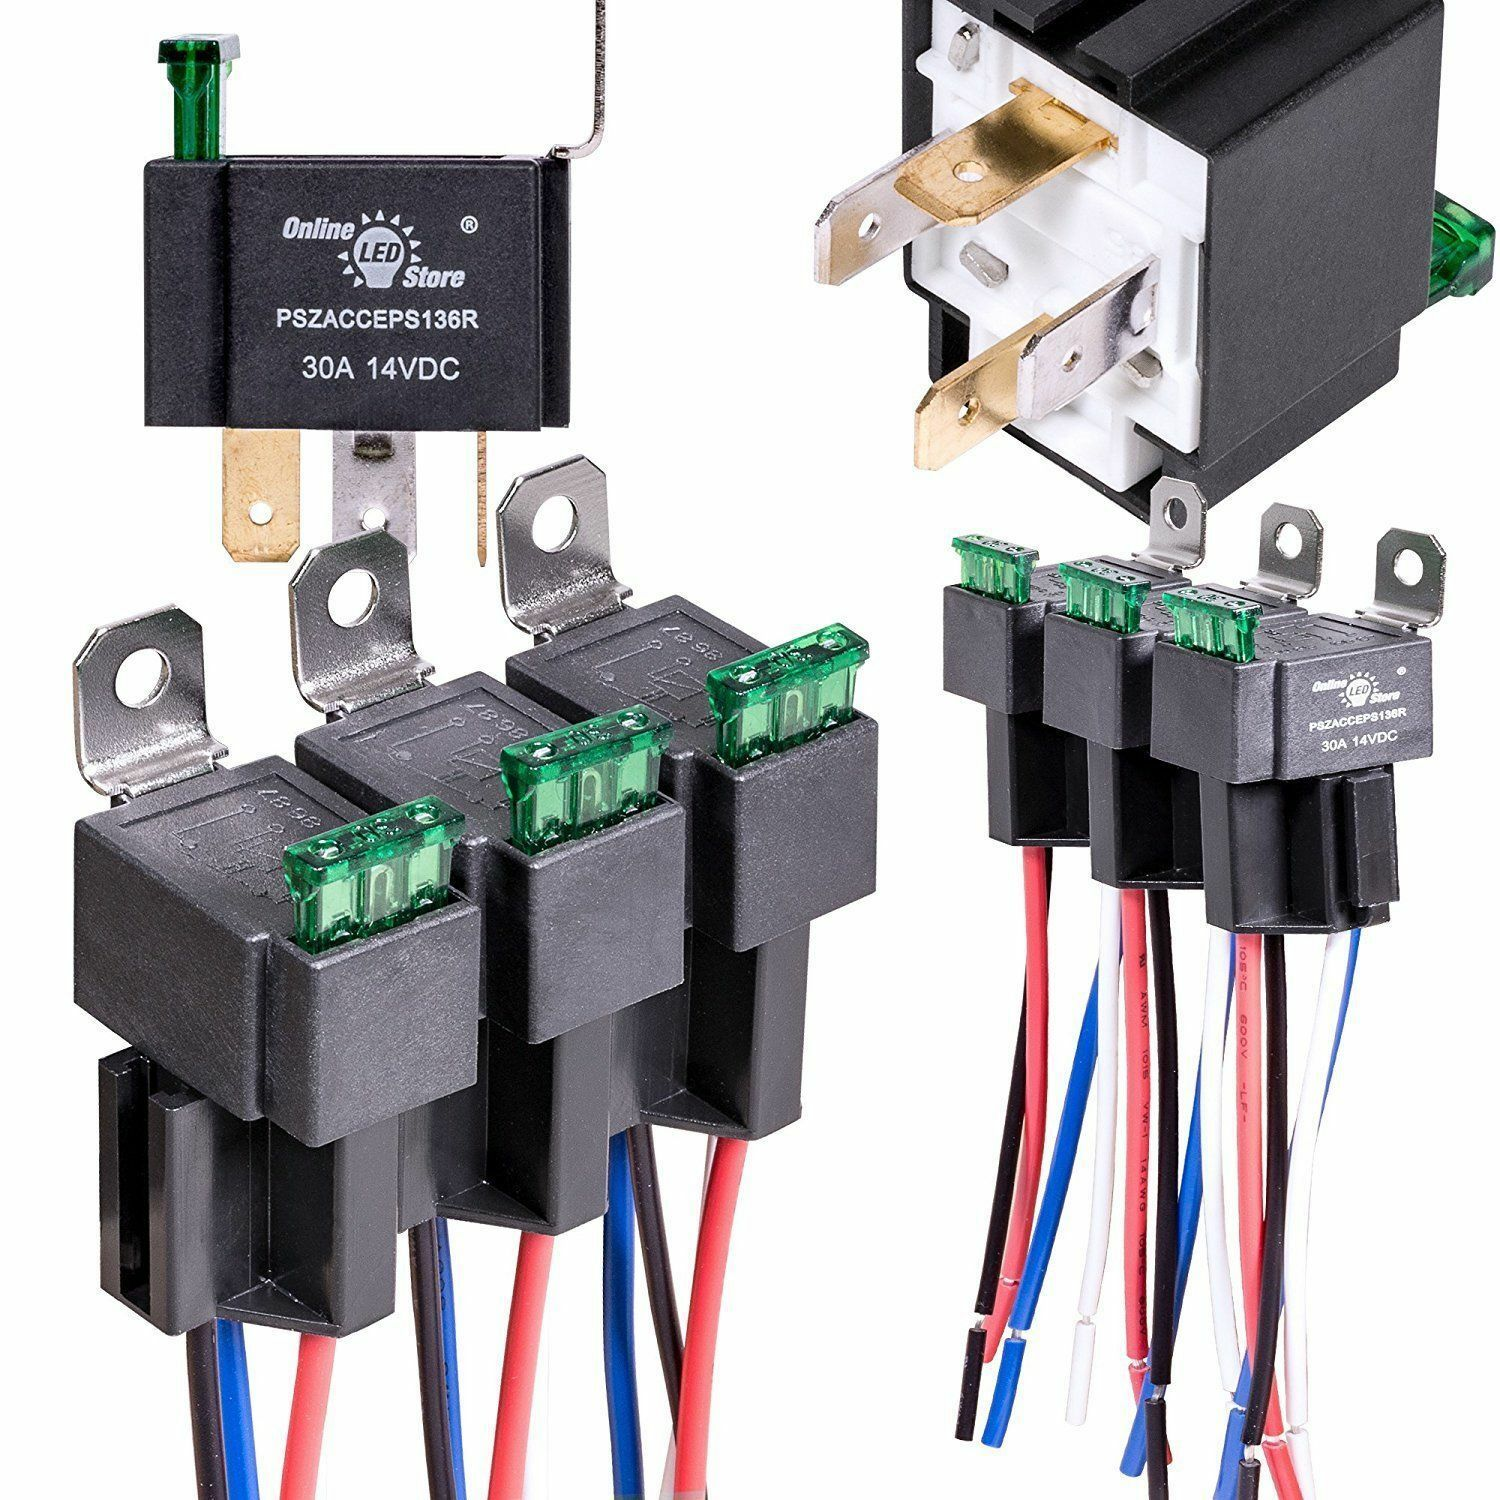 Ols 12v 30 Amp Fuse Electrical Relay Harness Ebay A Single Phase Square D Box Wiring Stock Photo